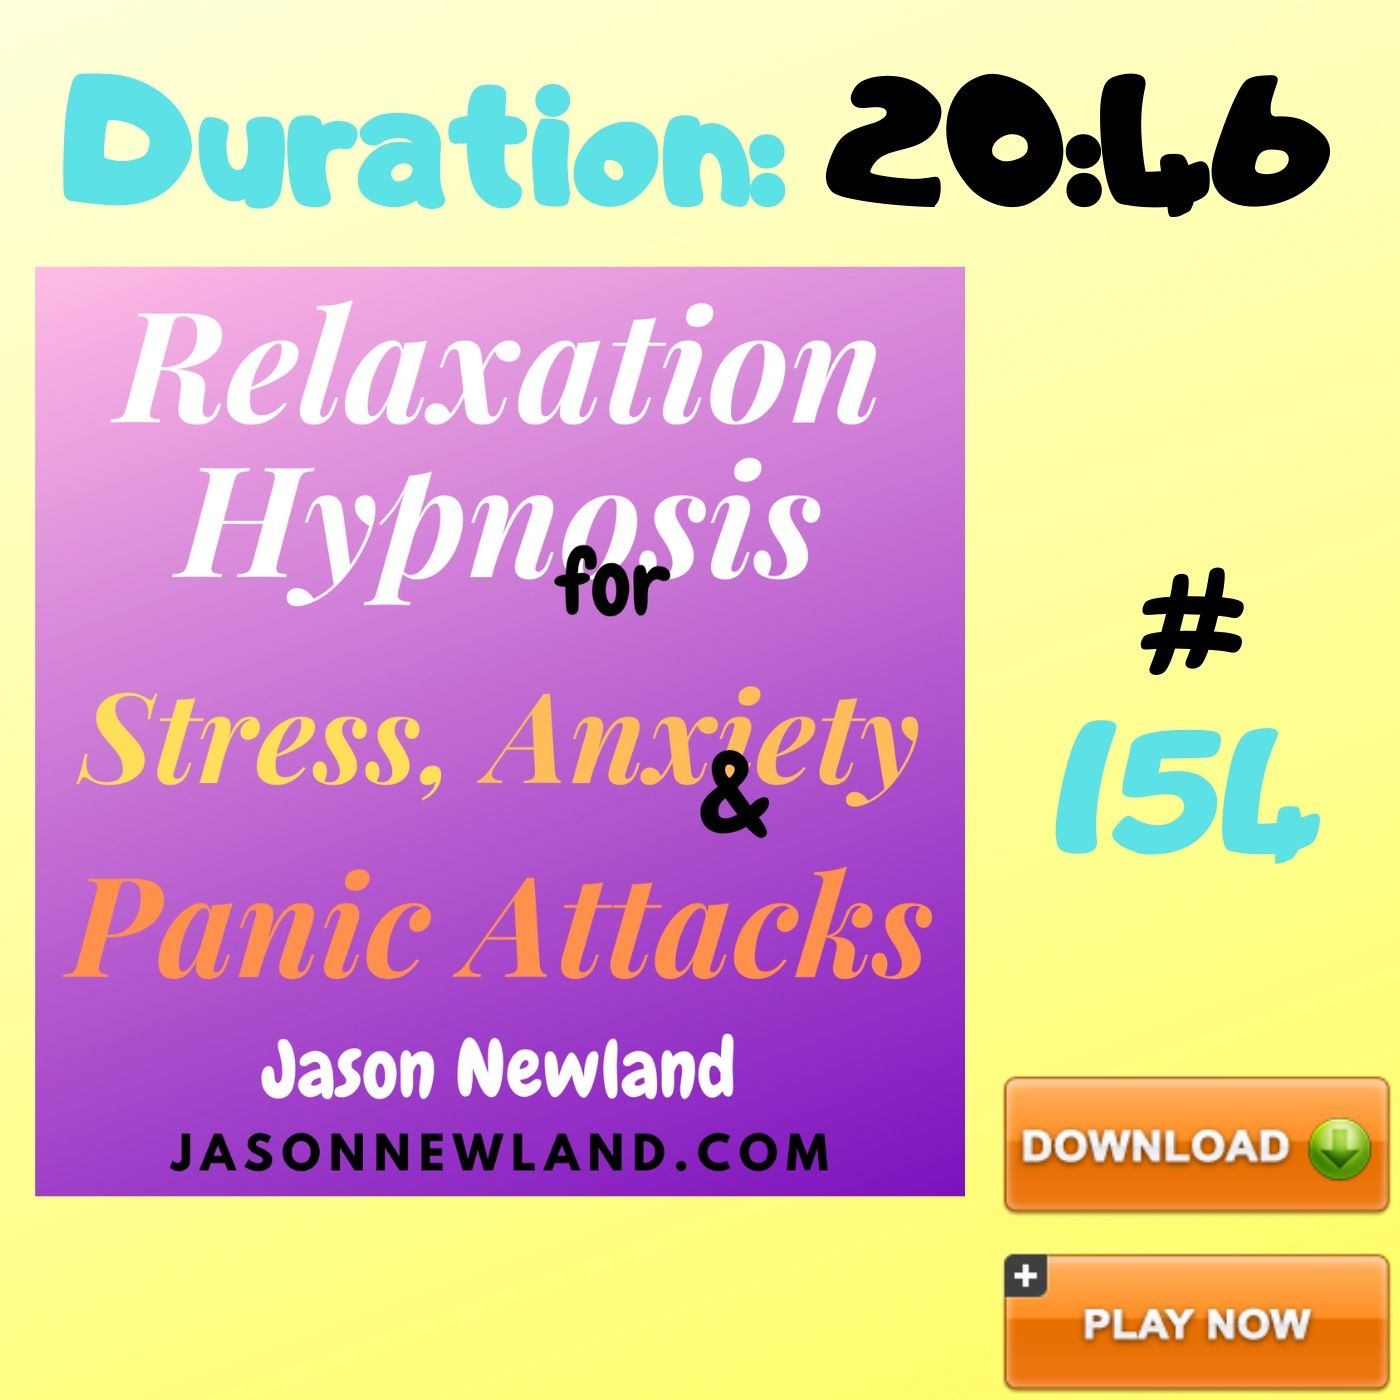 """#154 Relaxation Hypnosis for Stress, Anxiety & Panic Attacks - """"LETTING STRESS KNOW ITS NOT A PRISONER"""" (Jason Newland) (22nd June 2020)"""